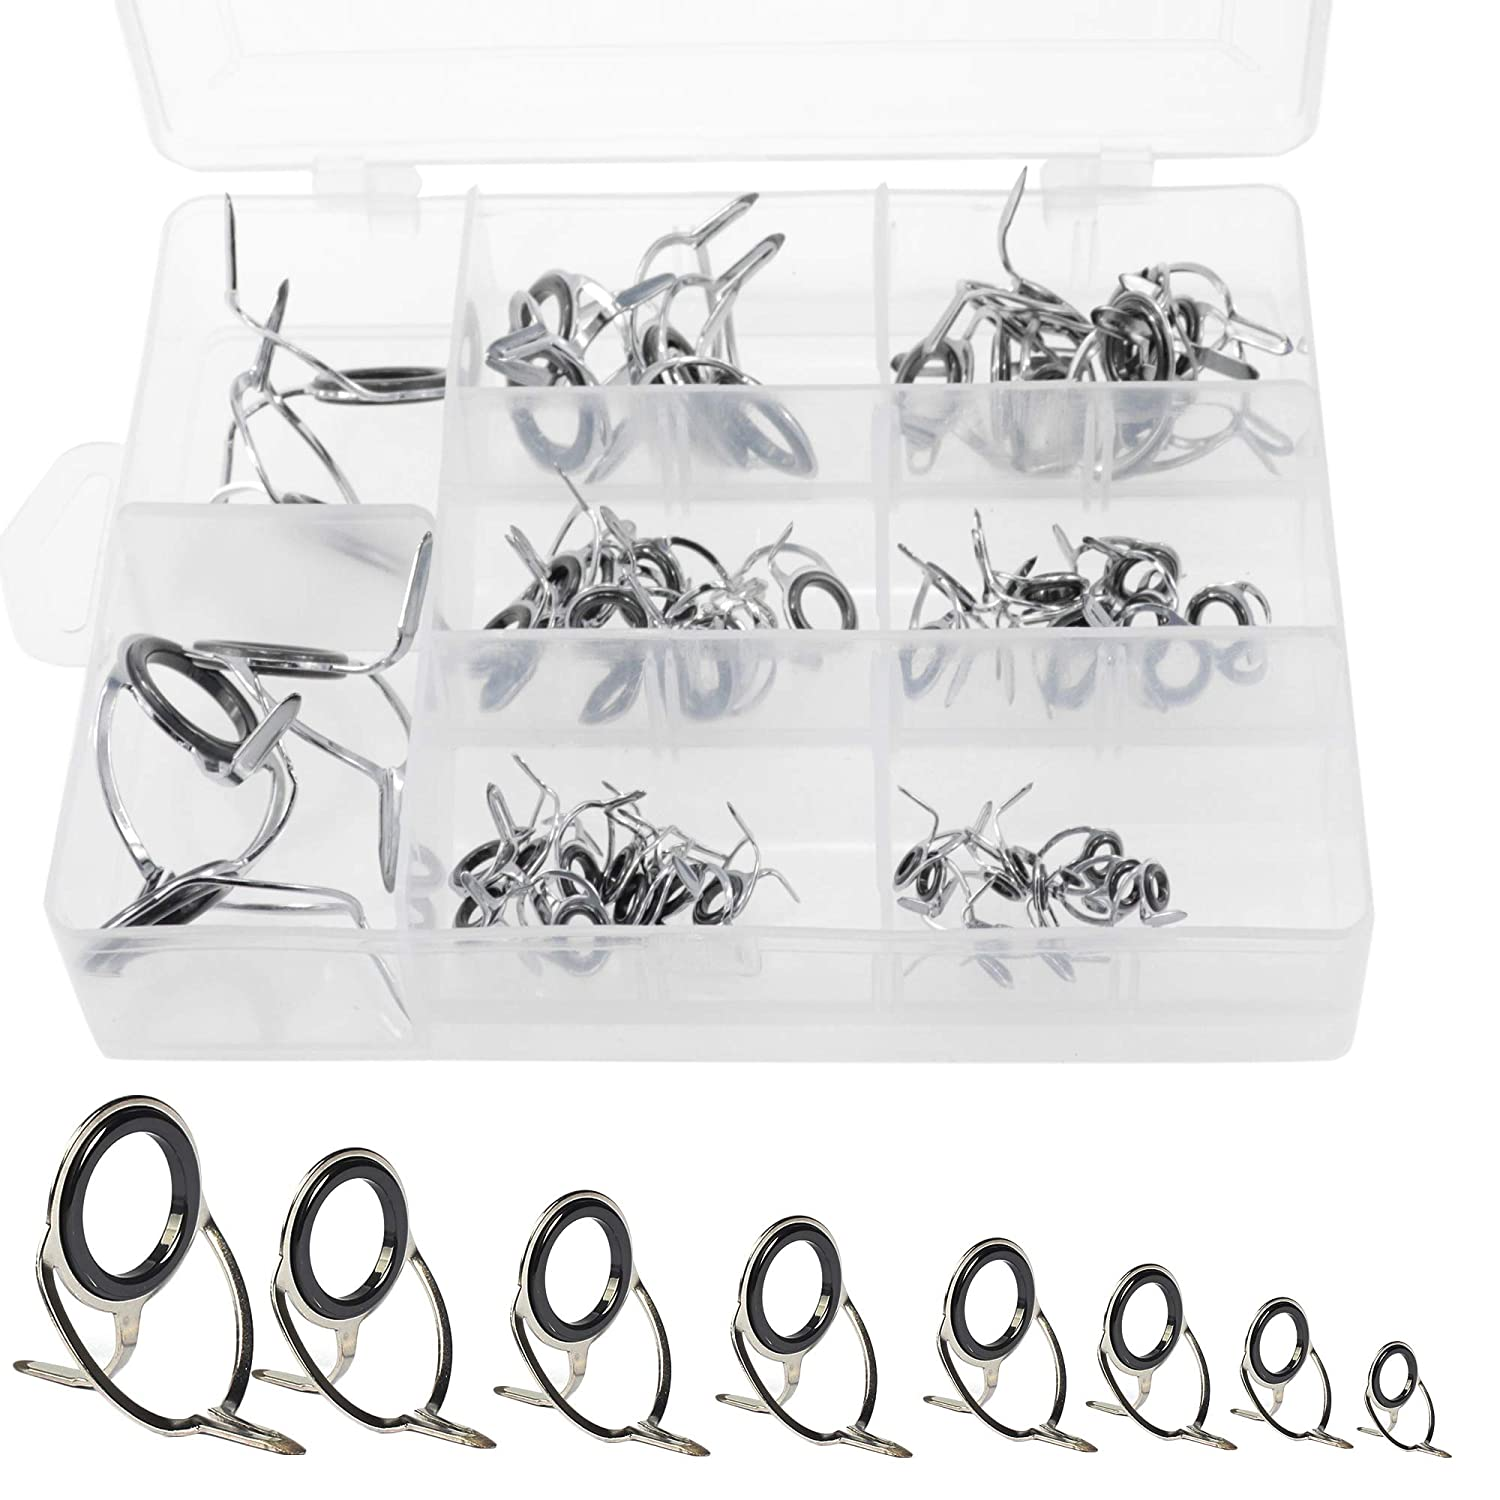 iztor Fishing Rod Guides 60Pcs, Silver Integrated All Stainless Steel Bait Casting Rod Guide Repair Kit